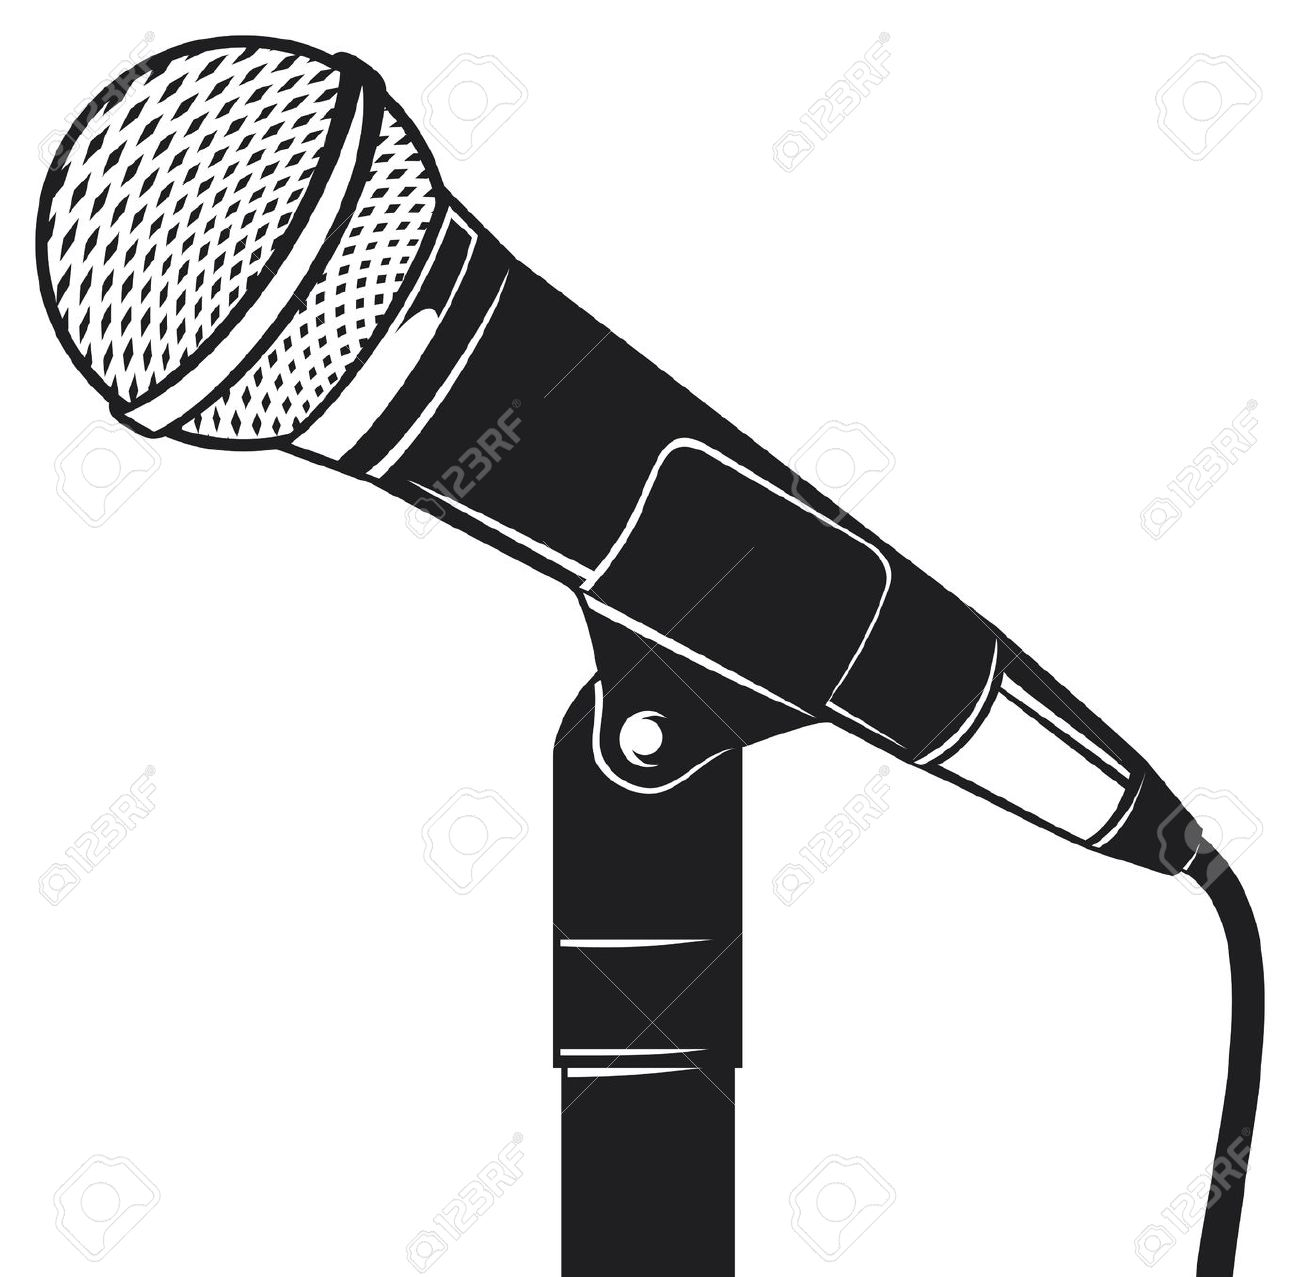 Microphone clipart source information #1